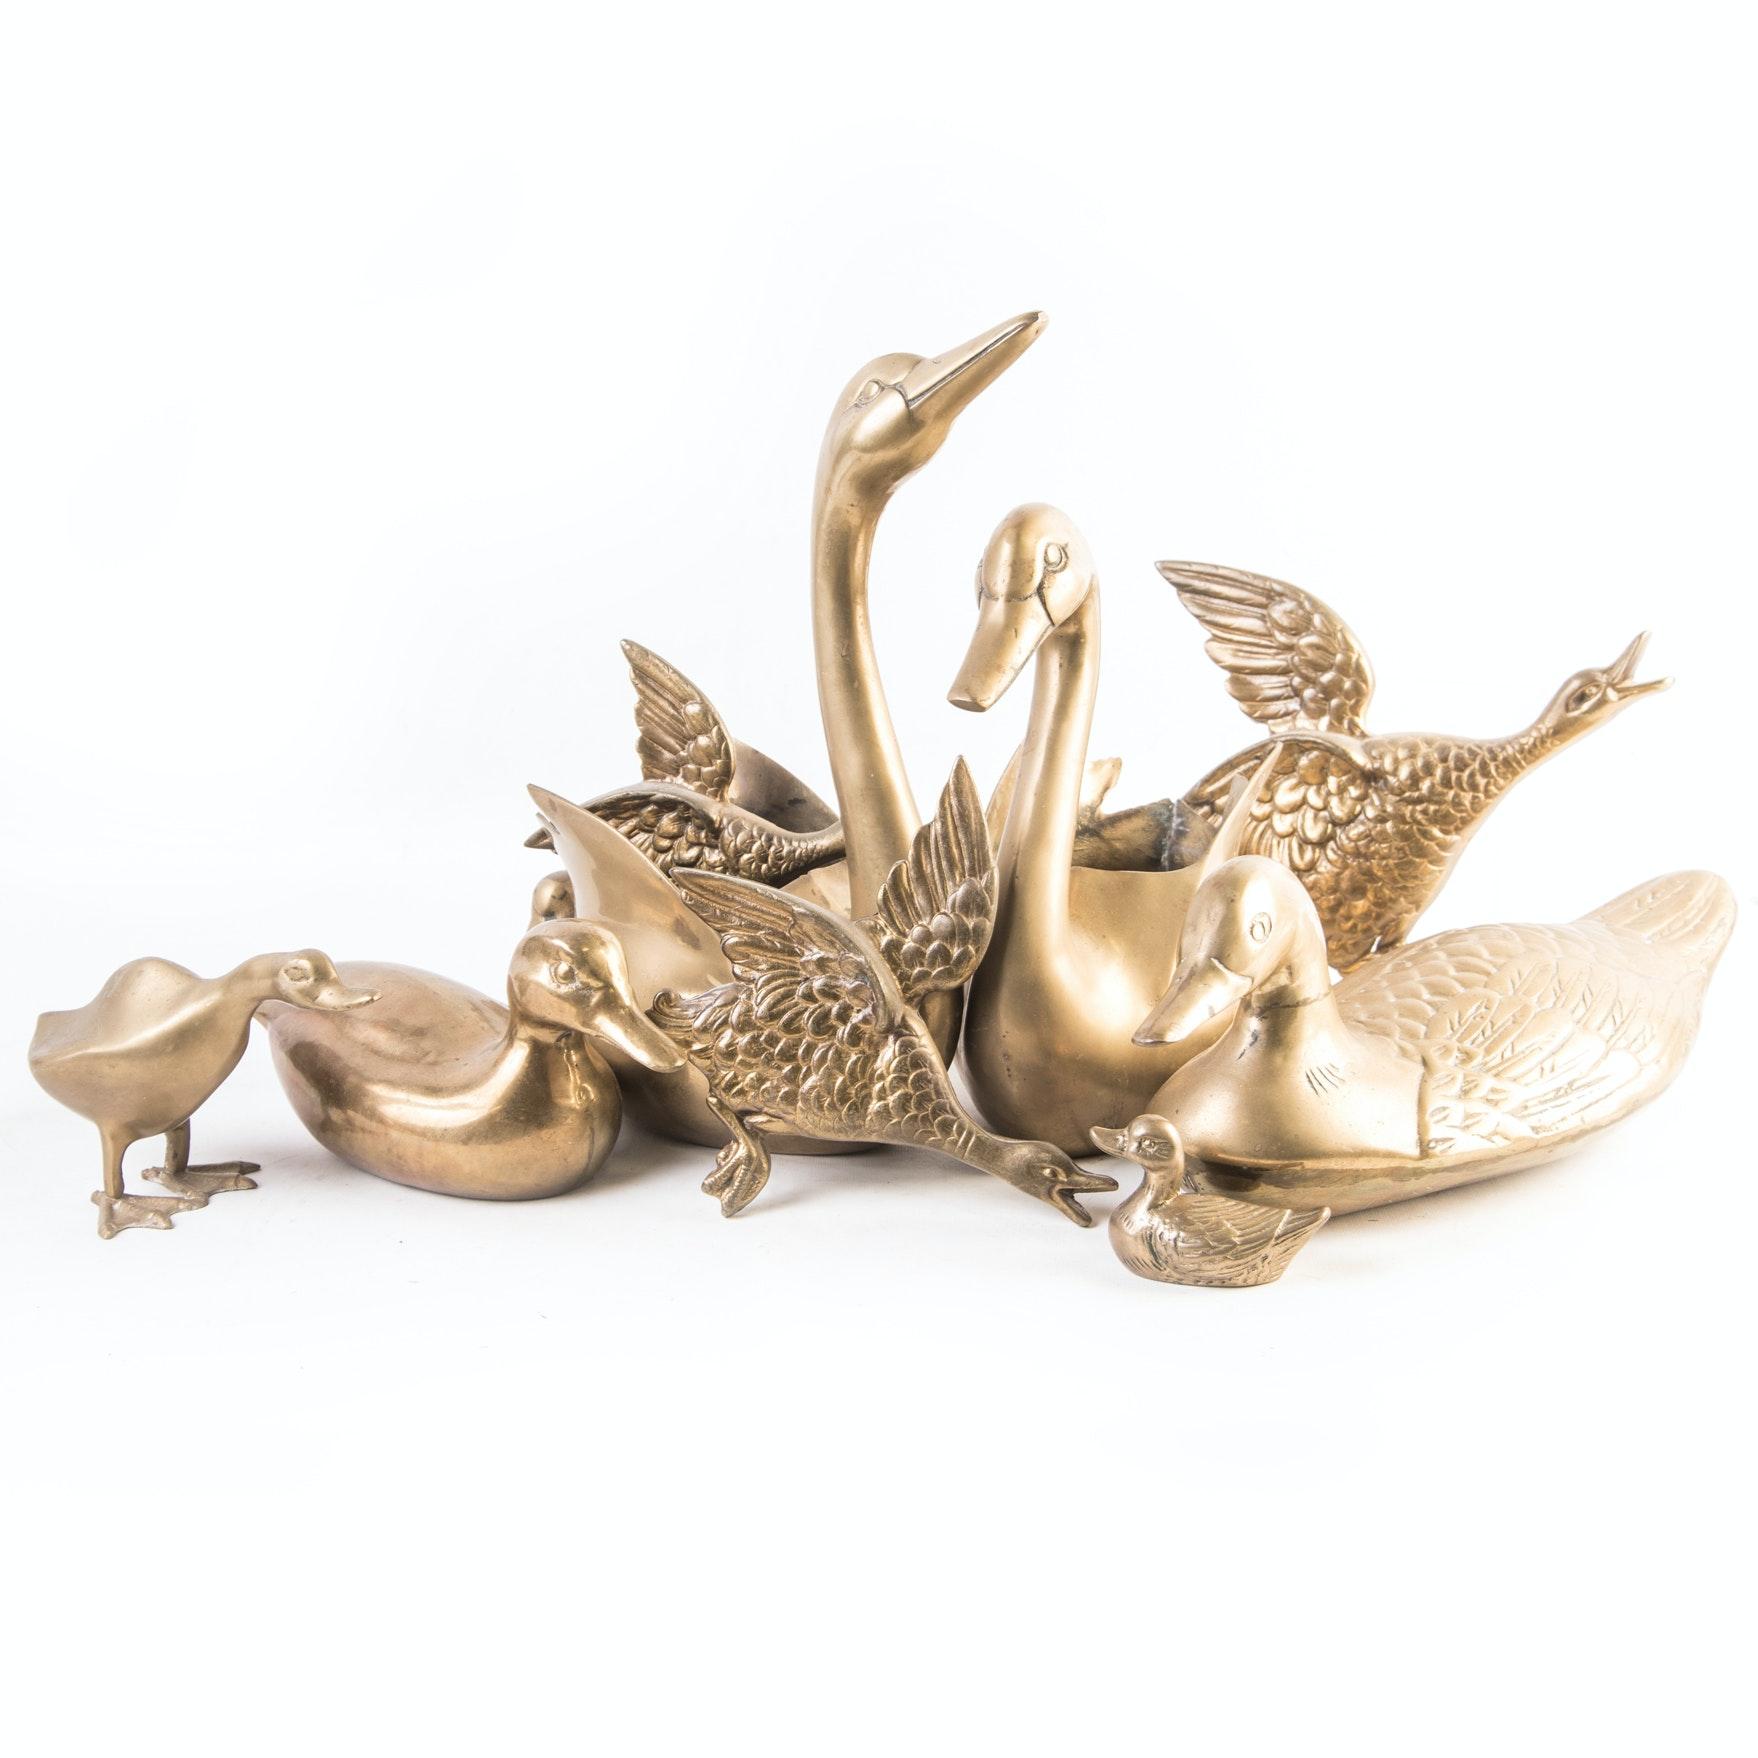 Brass Duck and Geese Collection